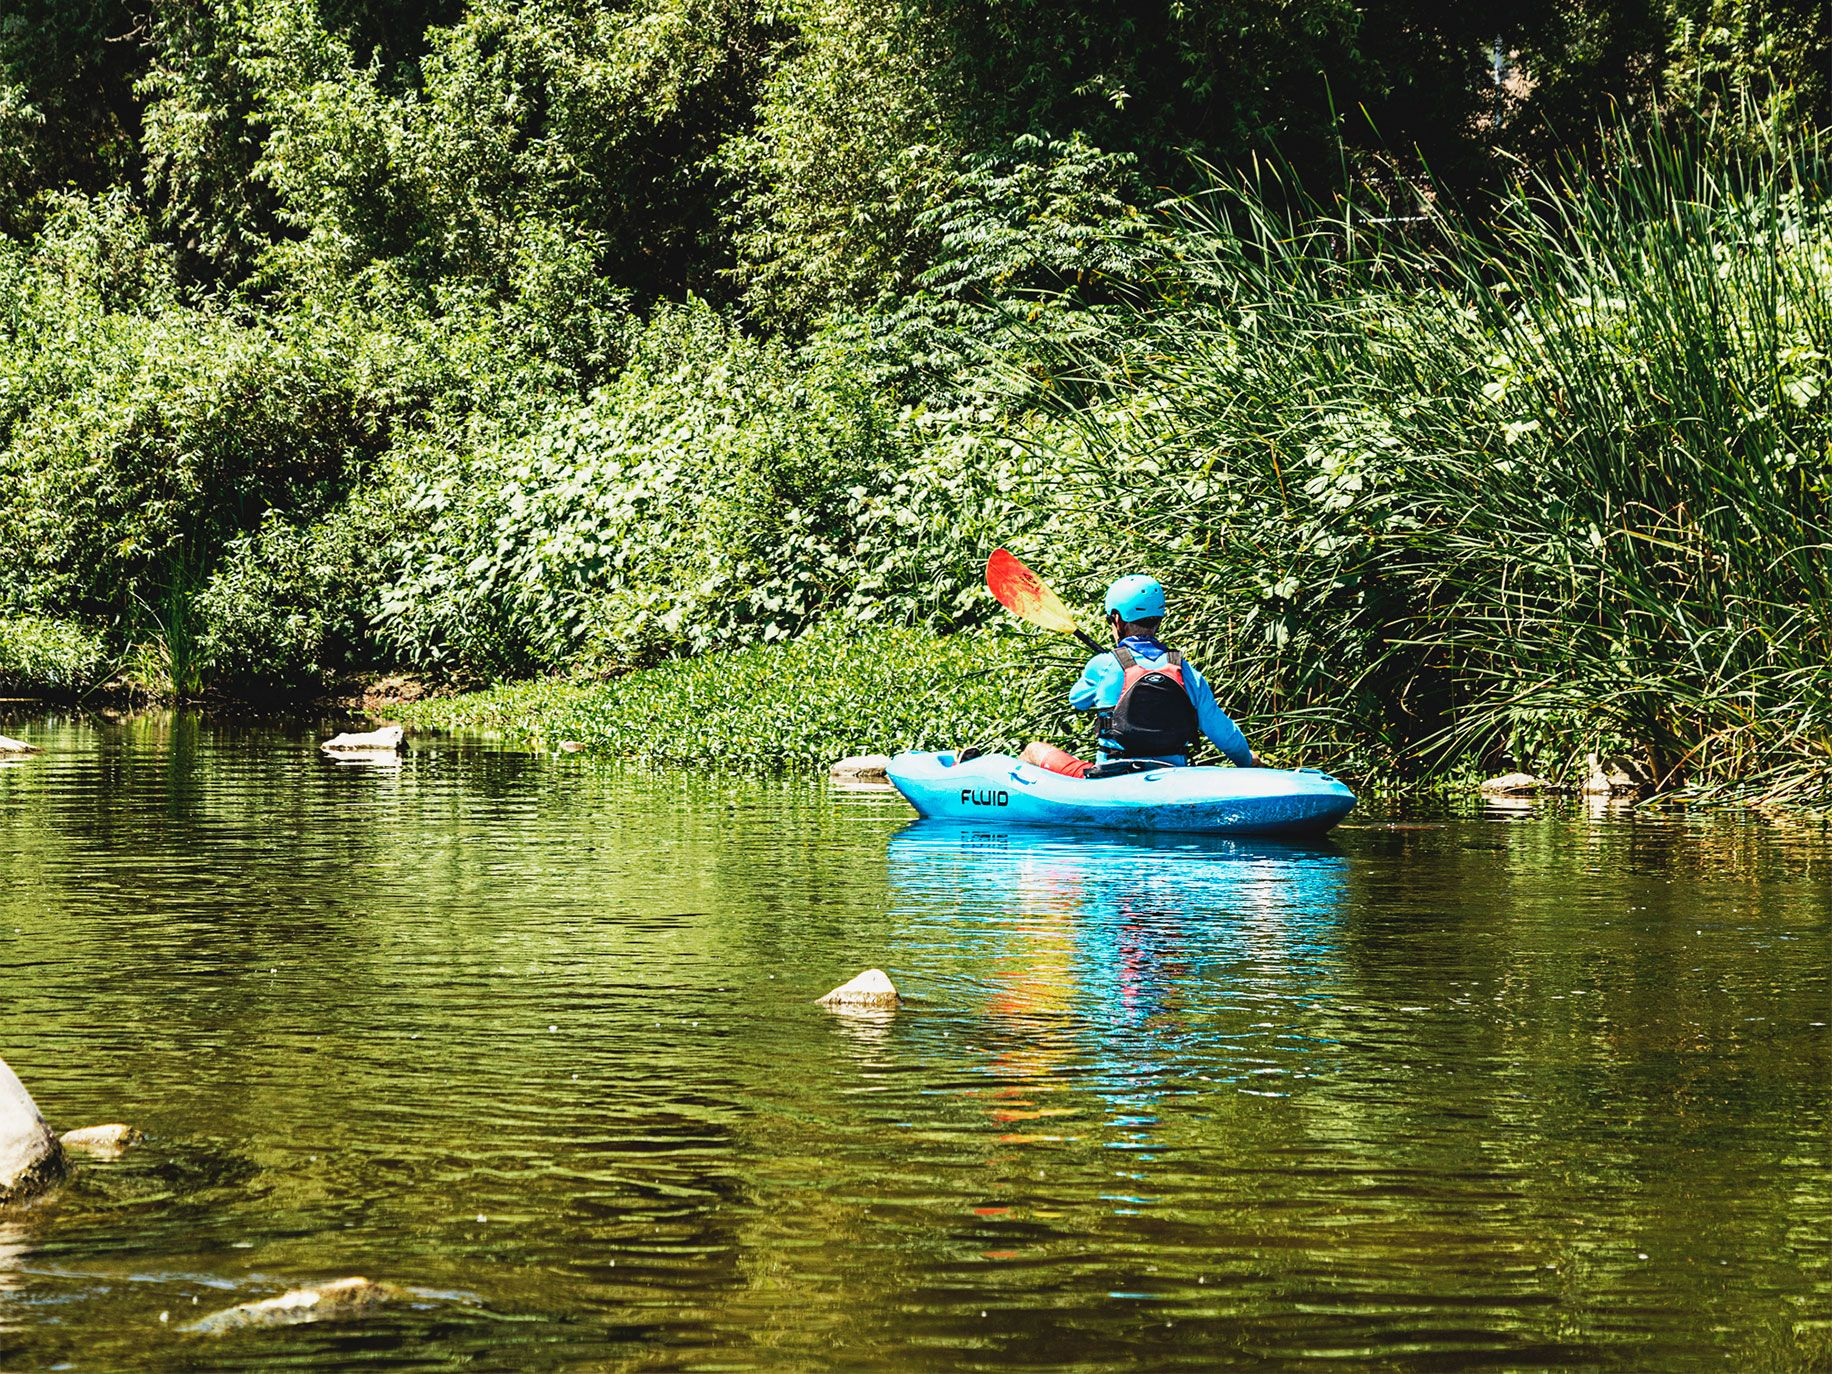 Here, a kayaker paddles through a lush section of river in the Frogtown neighborhood. Architect Frank Gehry's plans to revitalize the river include a series of wide elevated platforms that would provide parkland and outdoor space for social, cultural, and recreational activities.